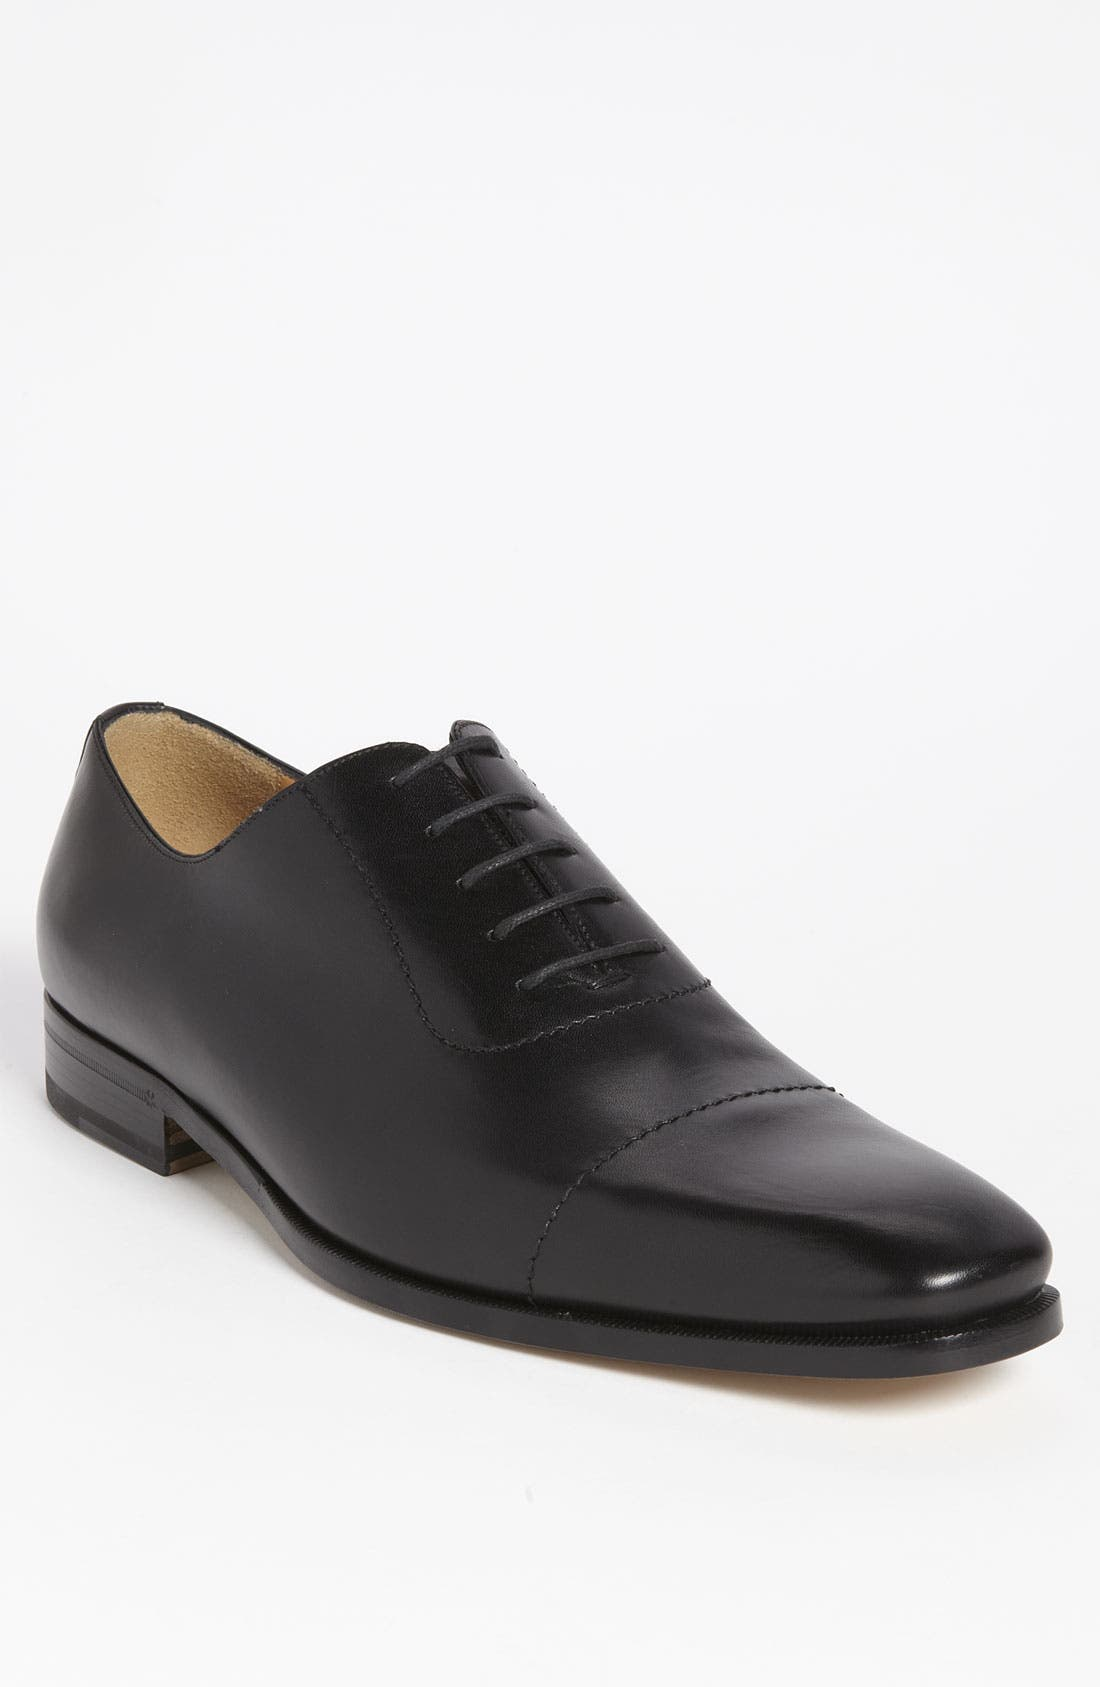 Main Image - Gucci 'Kyoto' Cap Toe Oxford